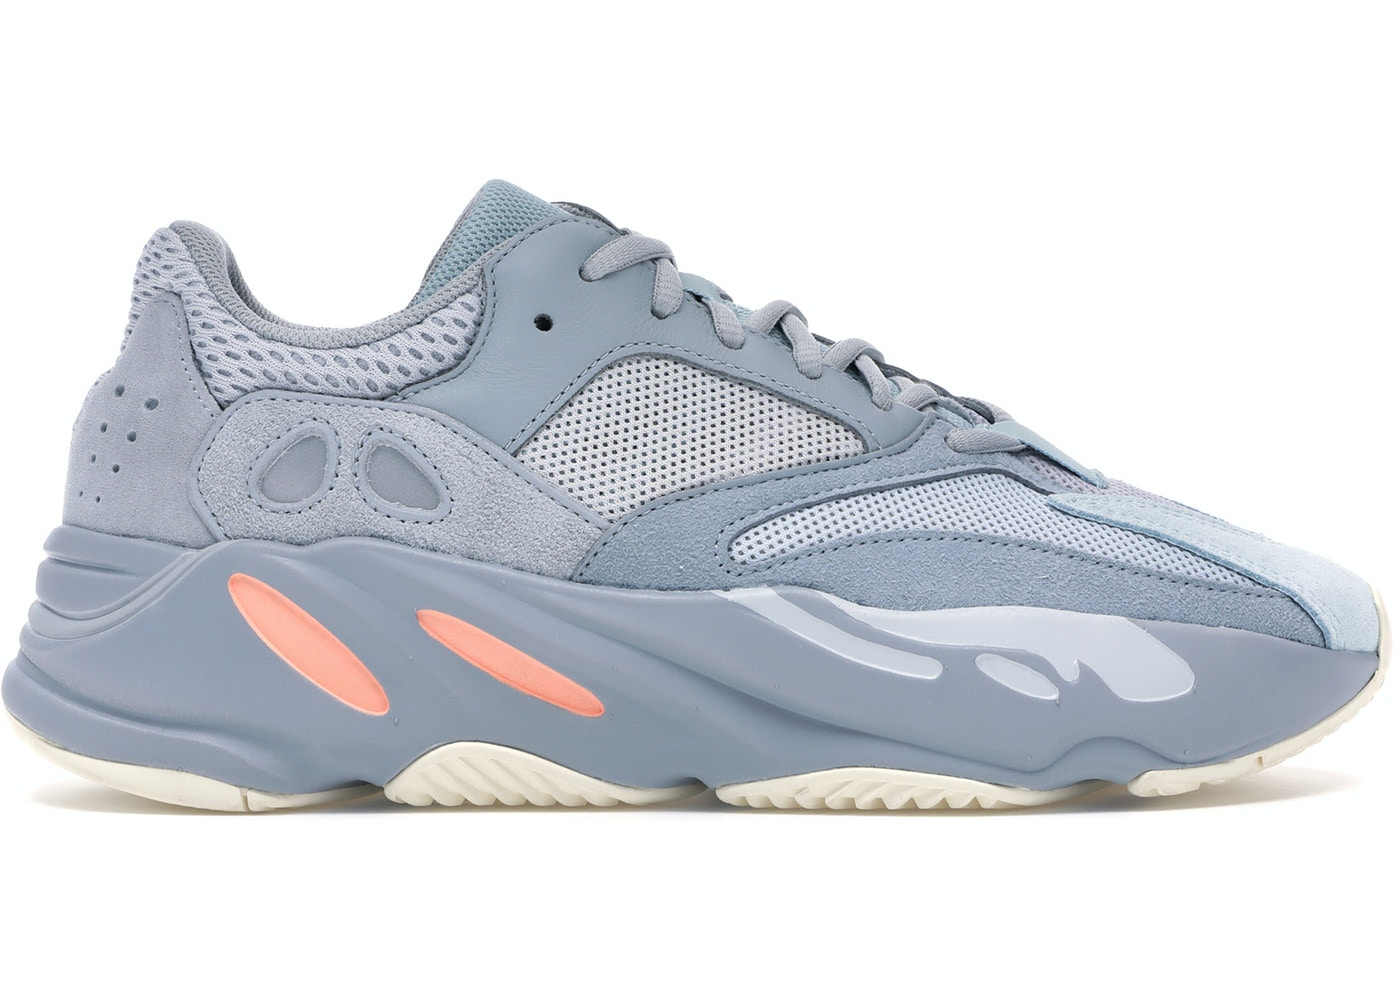 the best attitude d7be1 619de adidas Yeezy Boost 700 Inertia - EG7597